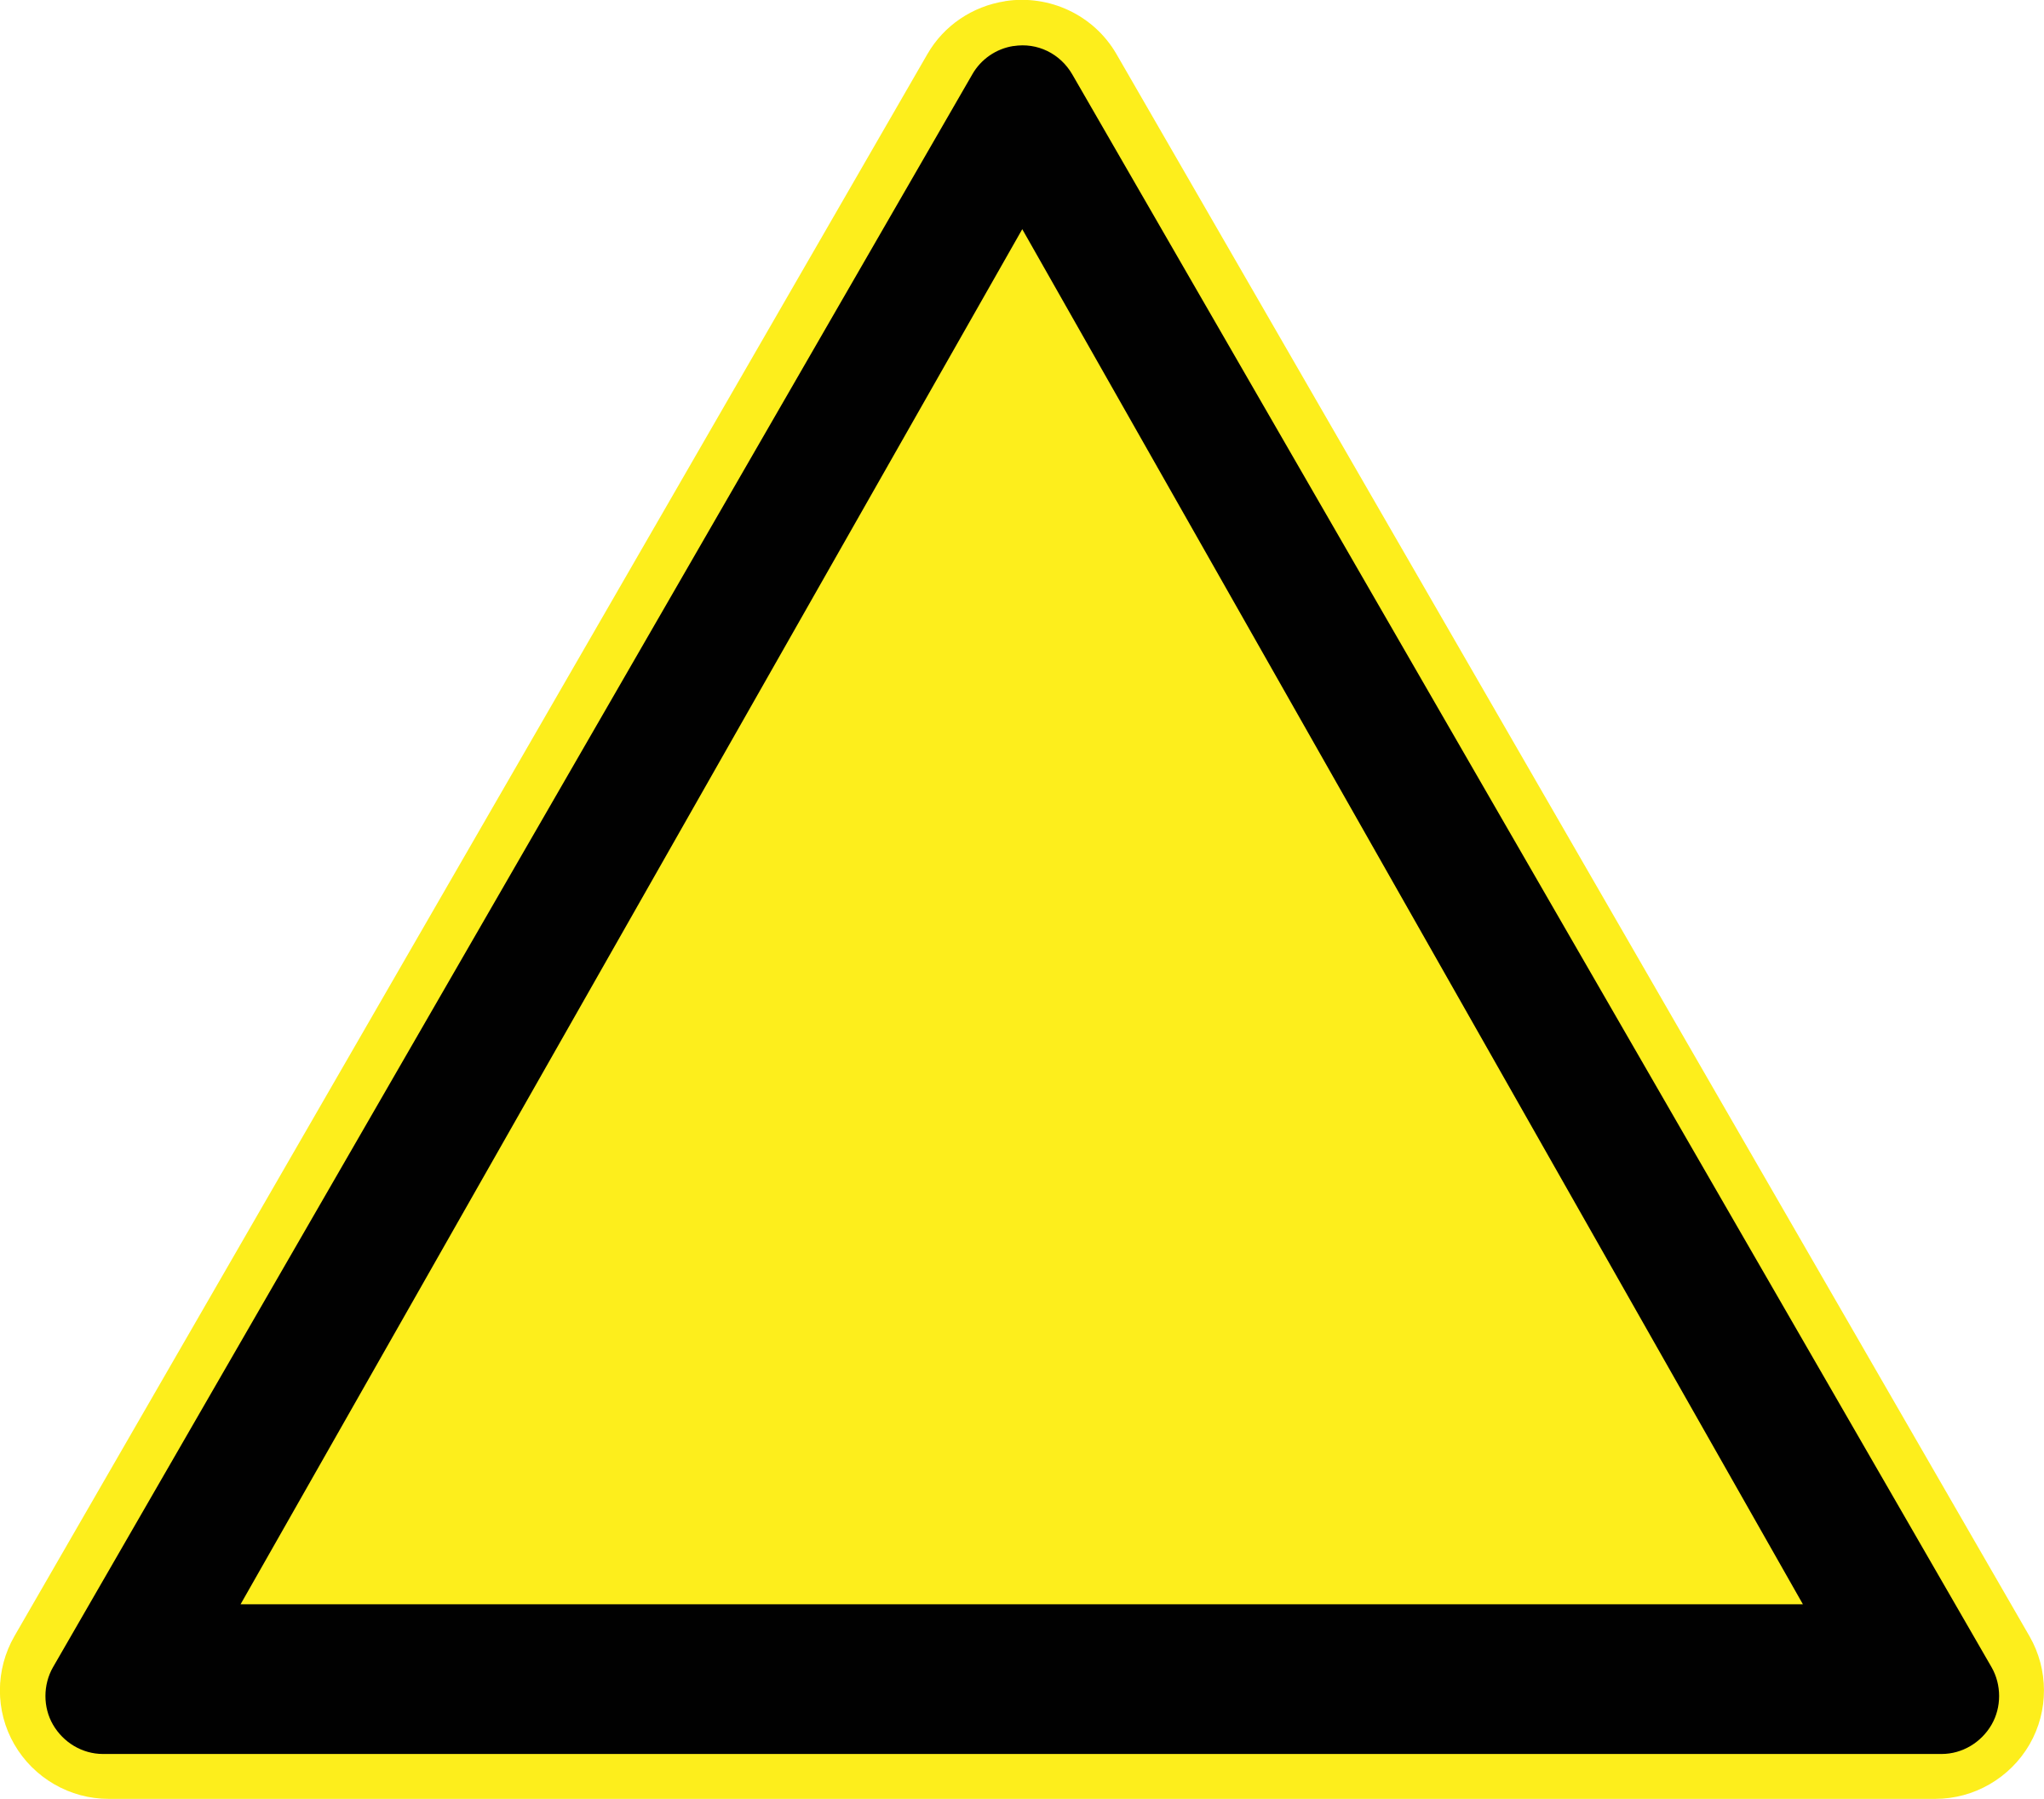 Yellow triangle clipart vector black and white Warning Sign Clipart   Free download best Warning Sign ... vector black and white